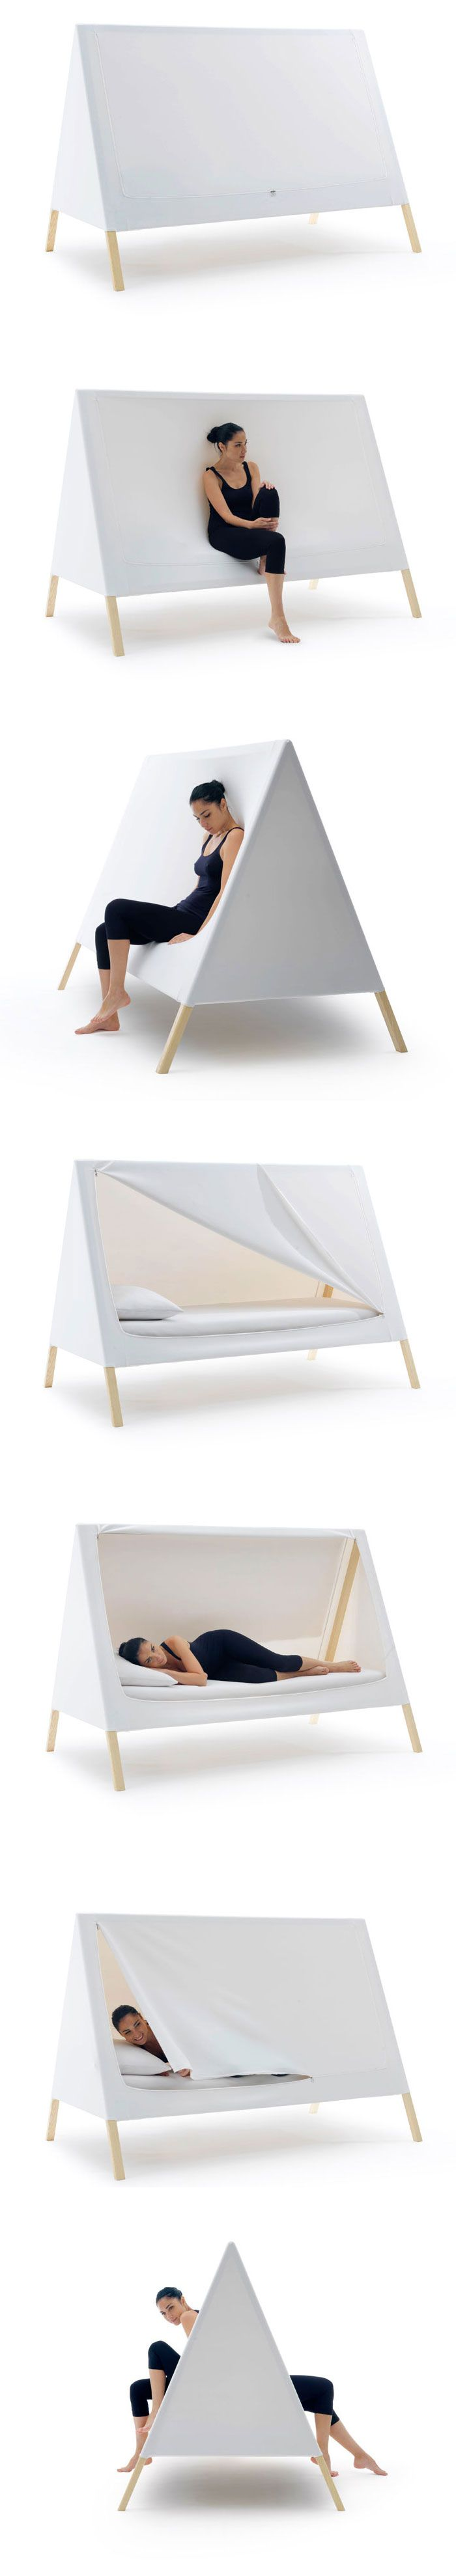 Sofa Bed Foresta By Campeggi Artists Work Pinterest  # Foresta Meubles